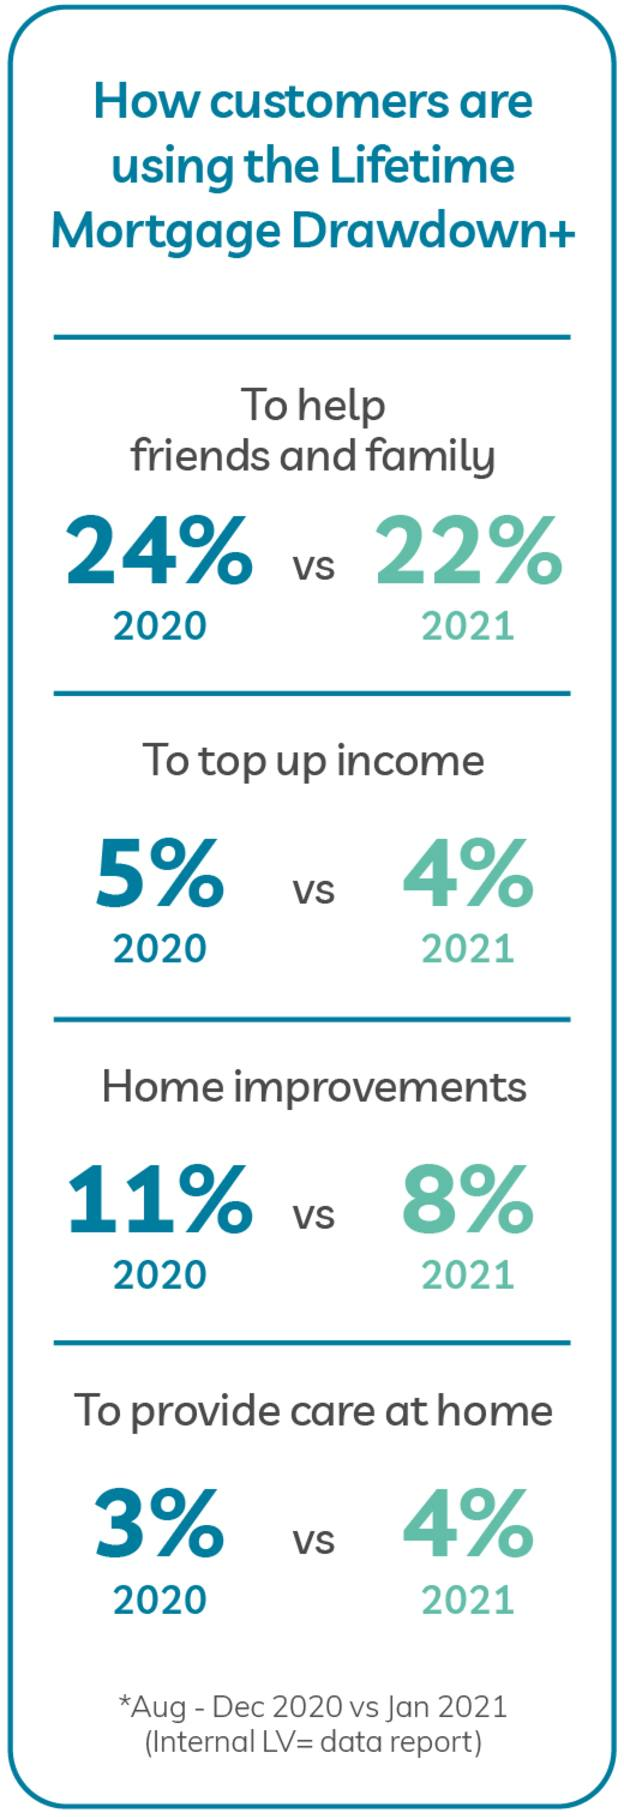 How Customers are using the lifetime mortgage drawdown. 1. To help friends and family: 24% in 2020 vs 22% in 2021. 2. To top up income: 5% in 2020 vs 4% in 2021. 3. Home Improvements: 11% in 2020 vs 8% in 2021. 4. To provide care at home: 3% in 2020 vs 4% in 2021. *August - December 2020 vs January 2021 (internal LV= data report)